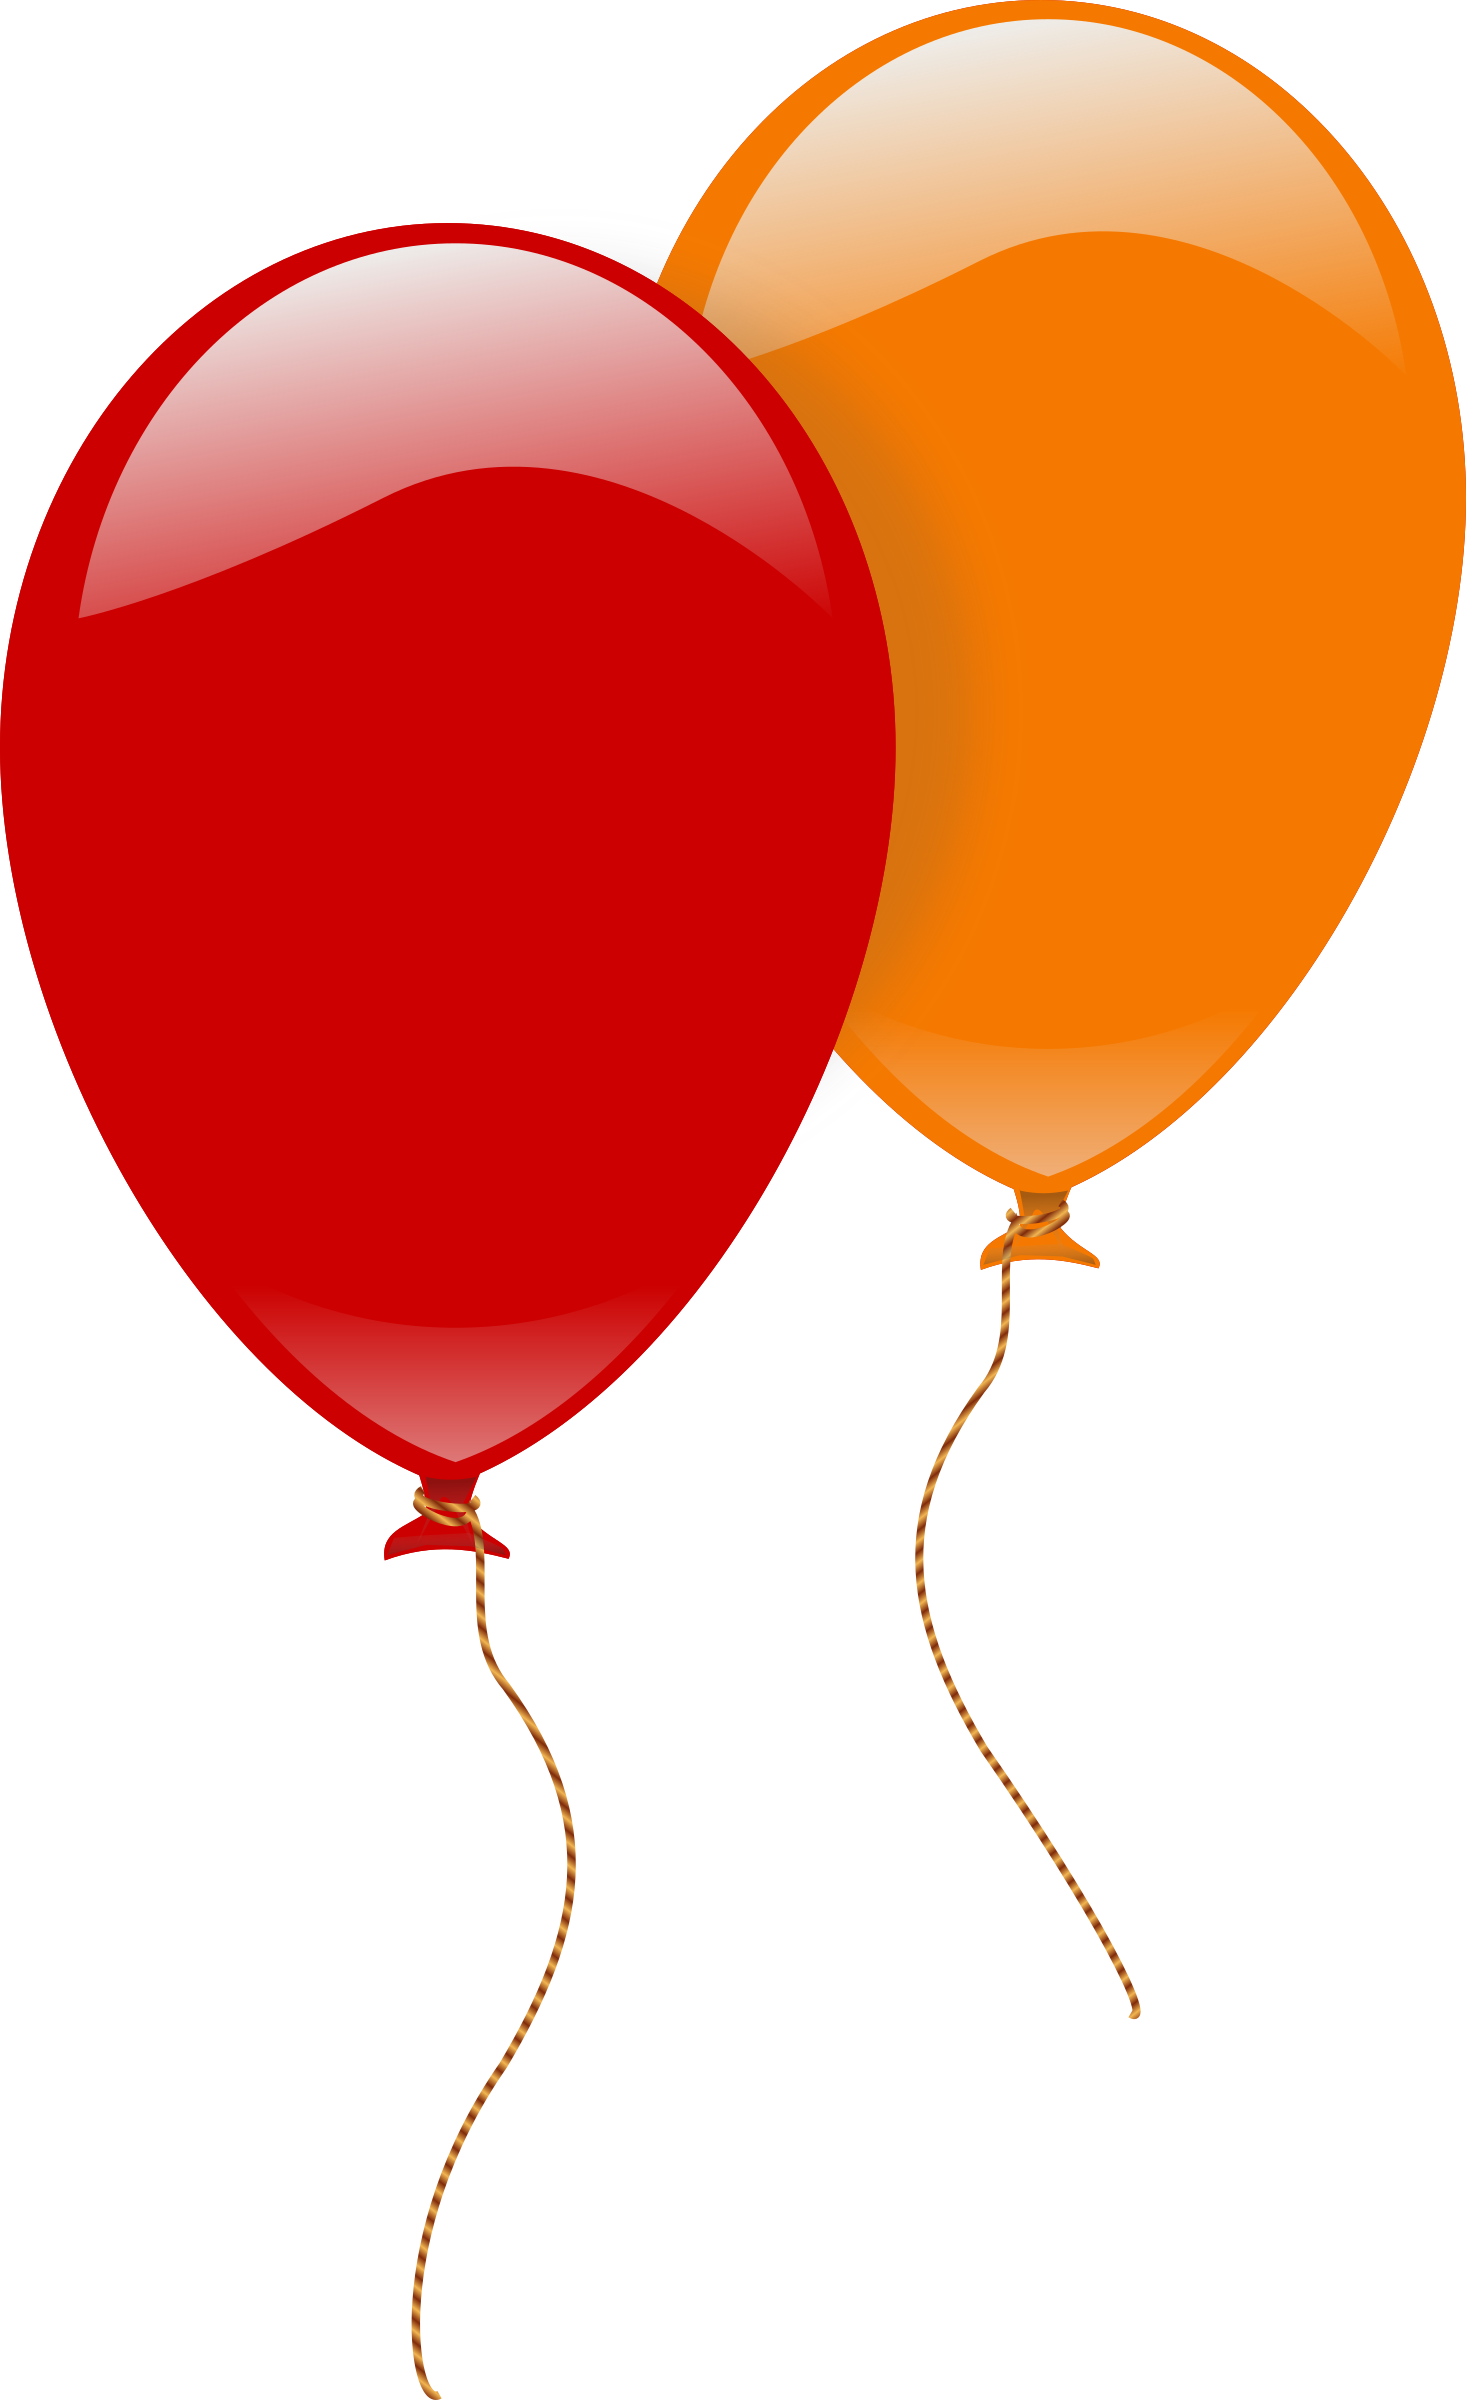 Two ballons big image. 2 clipart object